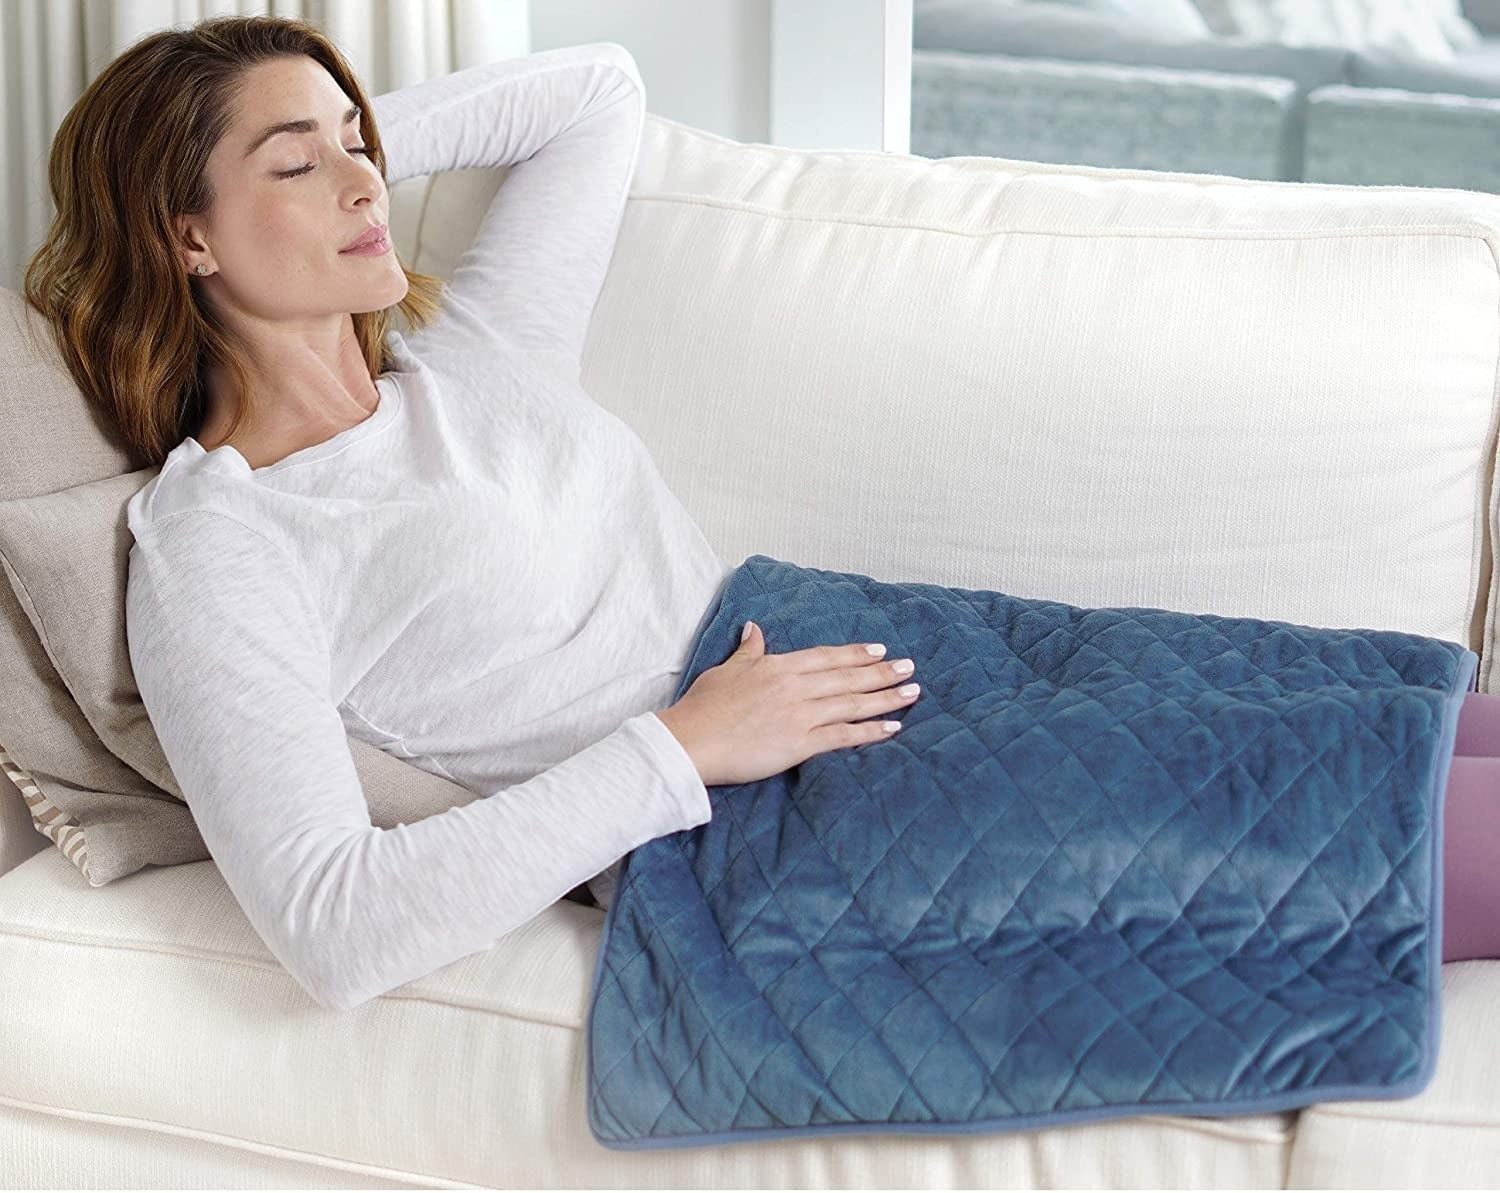 The pad spread on top of a sleeping woman